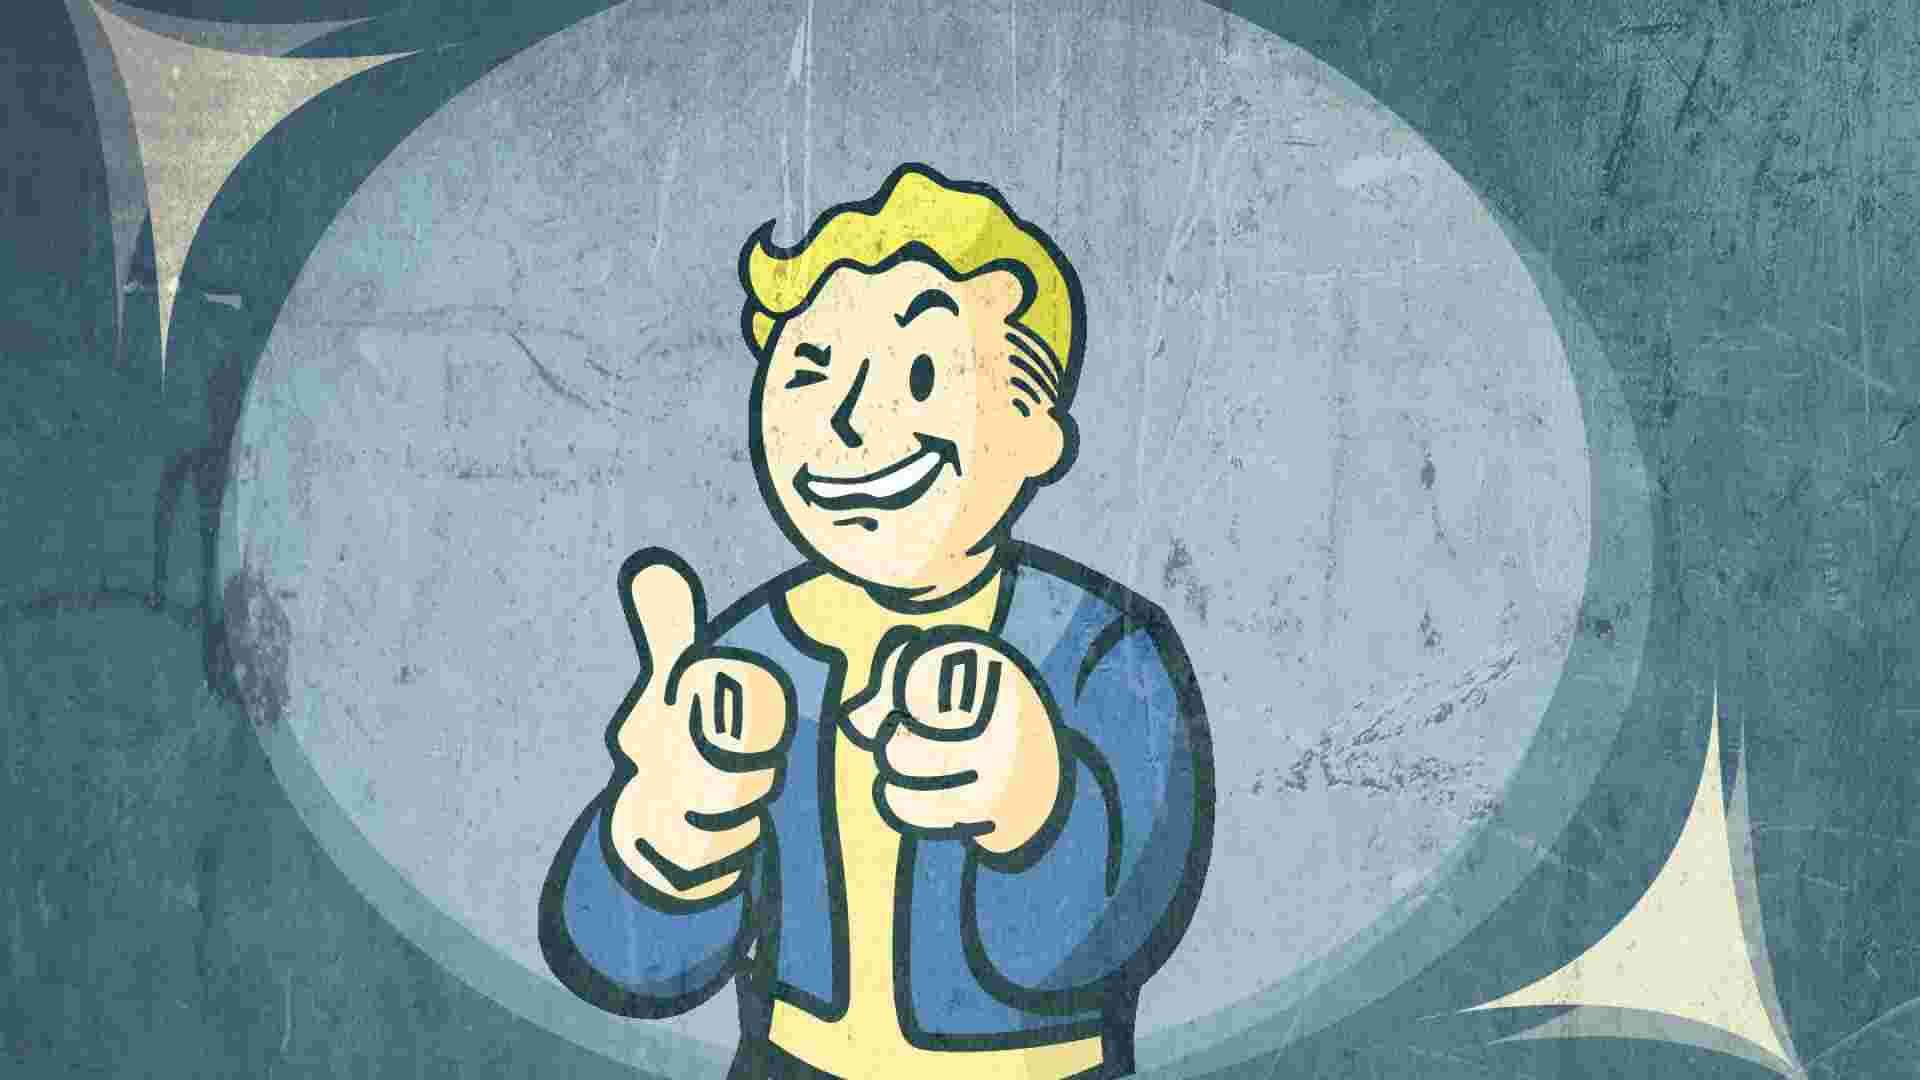 fallout-wallpaper-23339-24360-hd-wallpapers